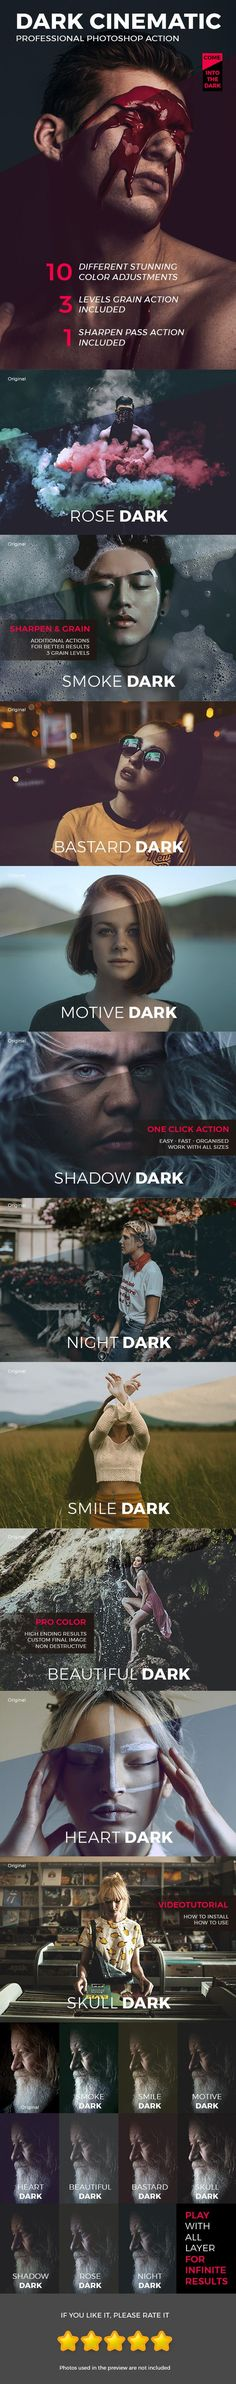 Dark Cinematic Photoshop Actions - Photo Effects Actions